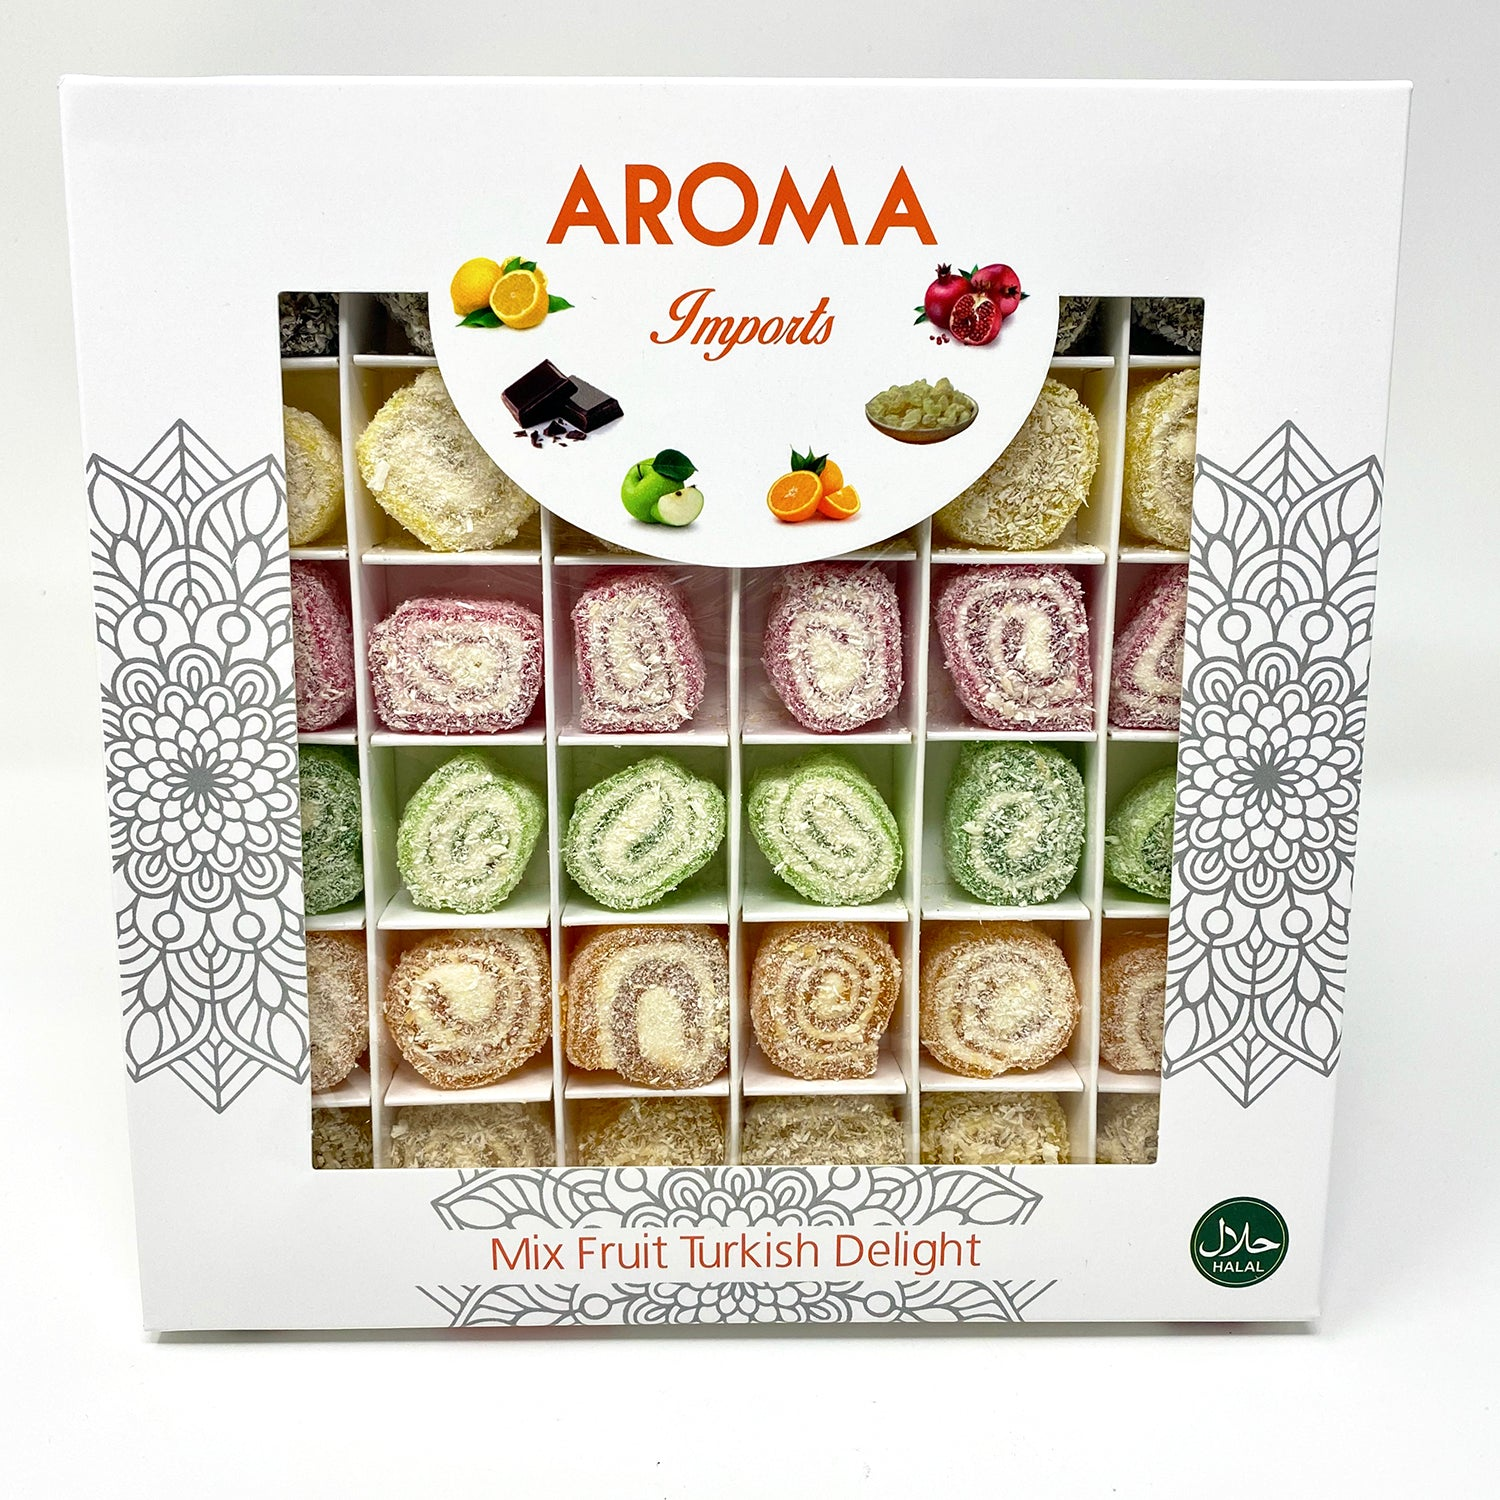 Mixed Fruit Turkish Delight - Aroma Imports